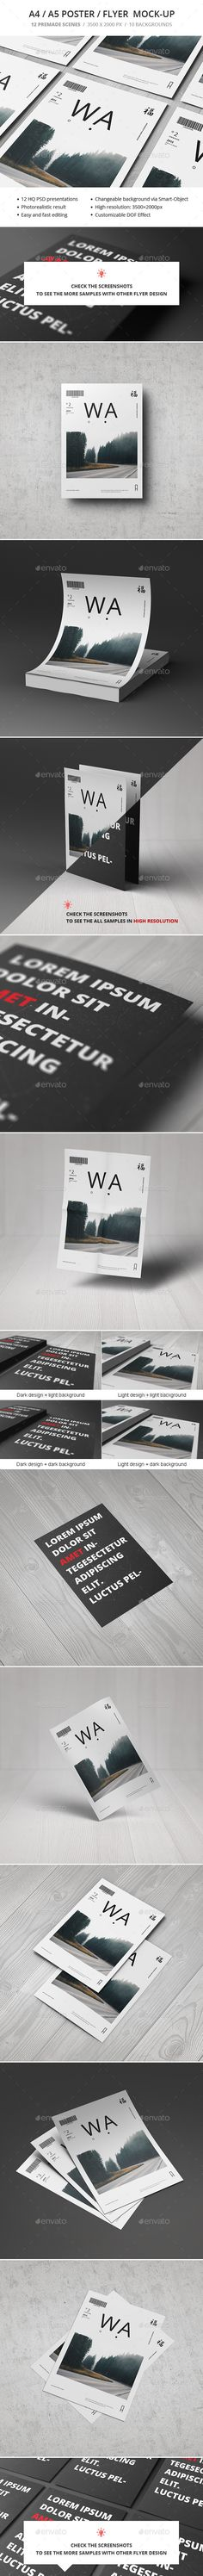 Photography Flyer Photography flyer, Ai illustrator and Flyer - photography flyer